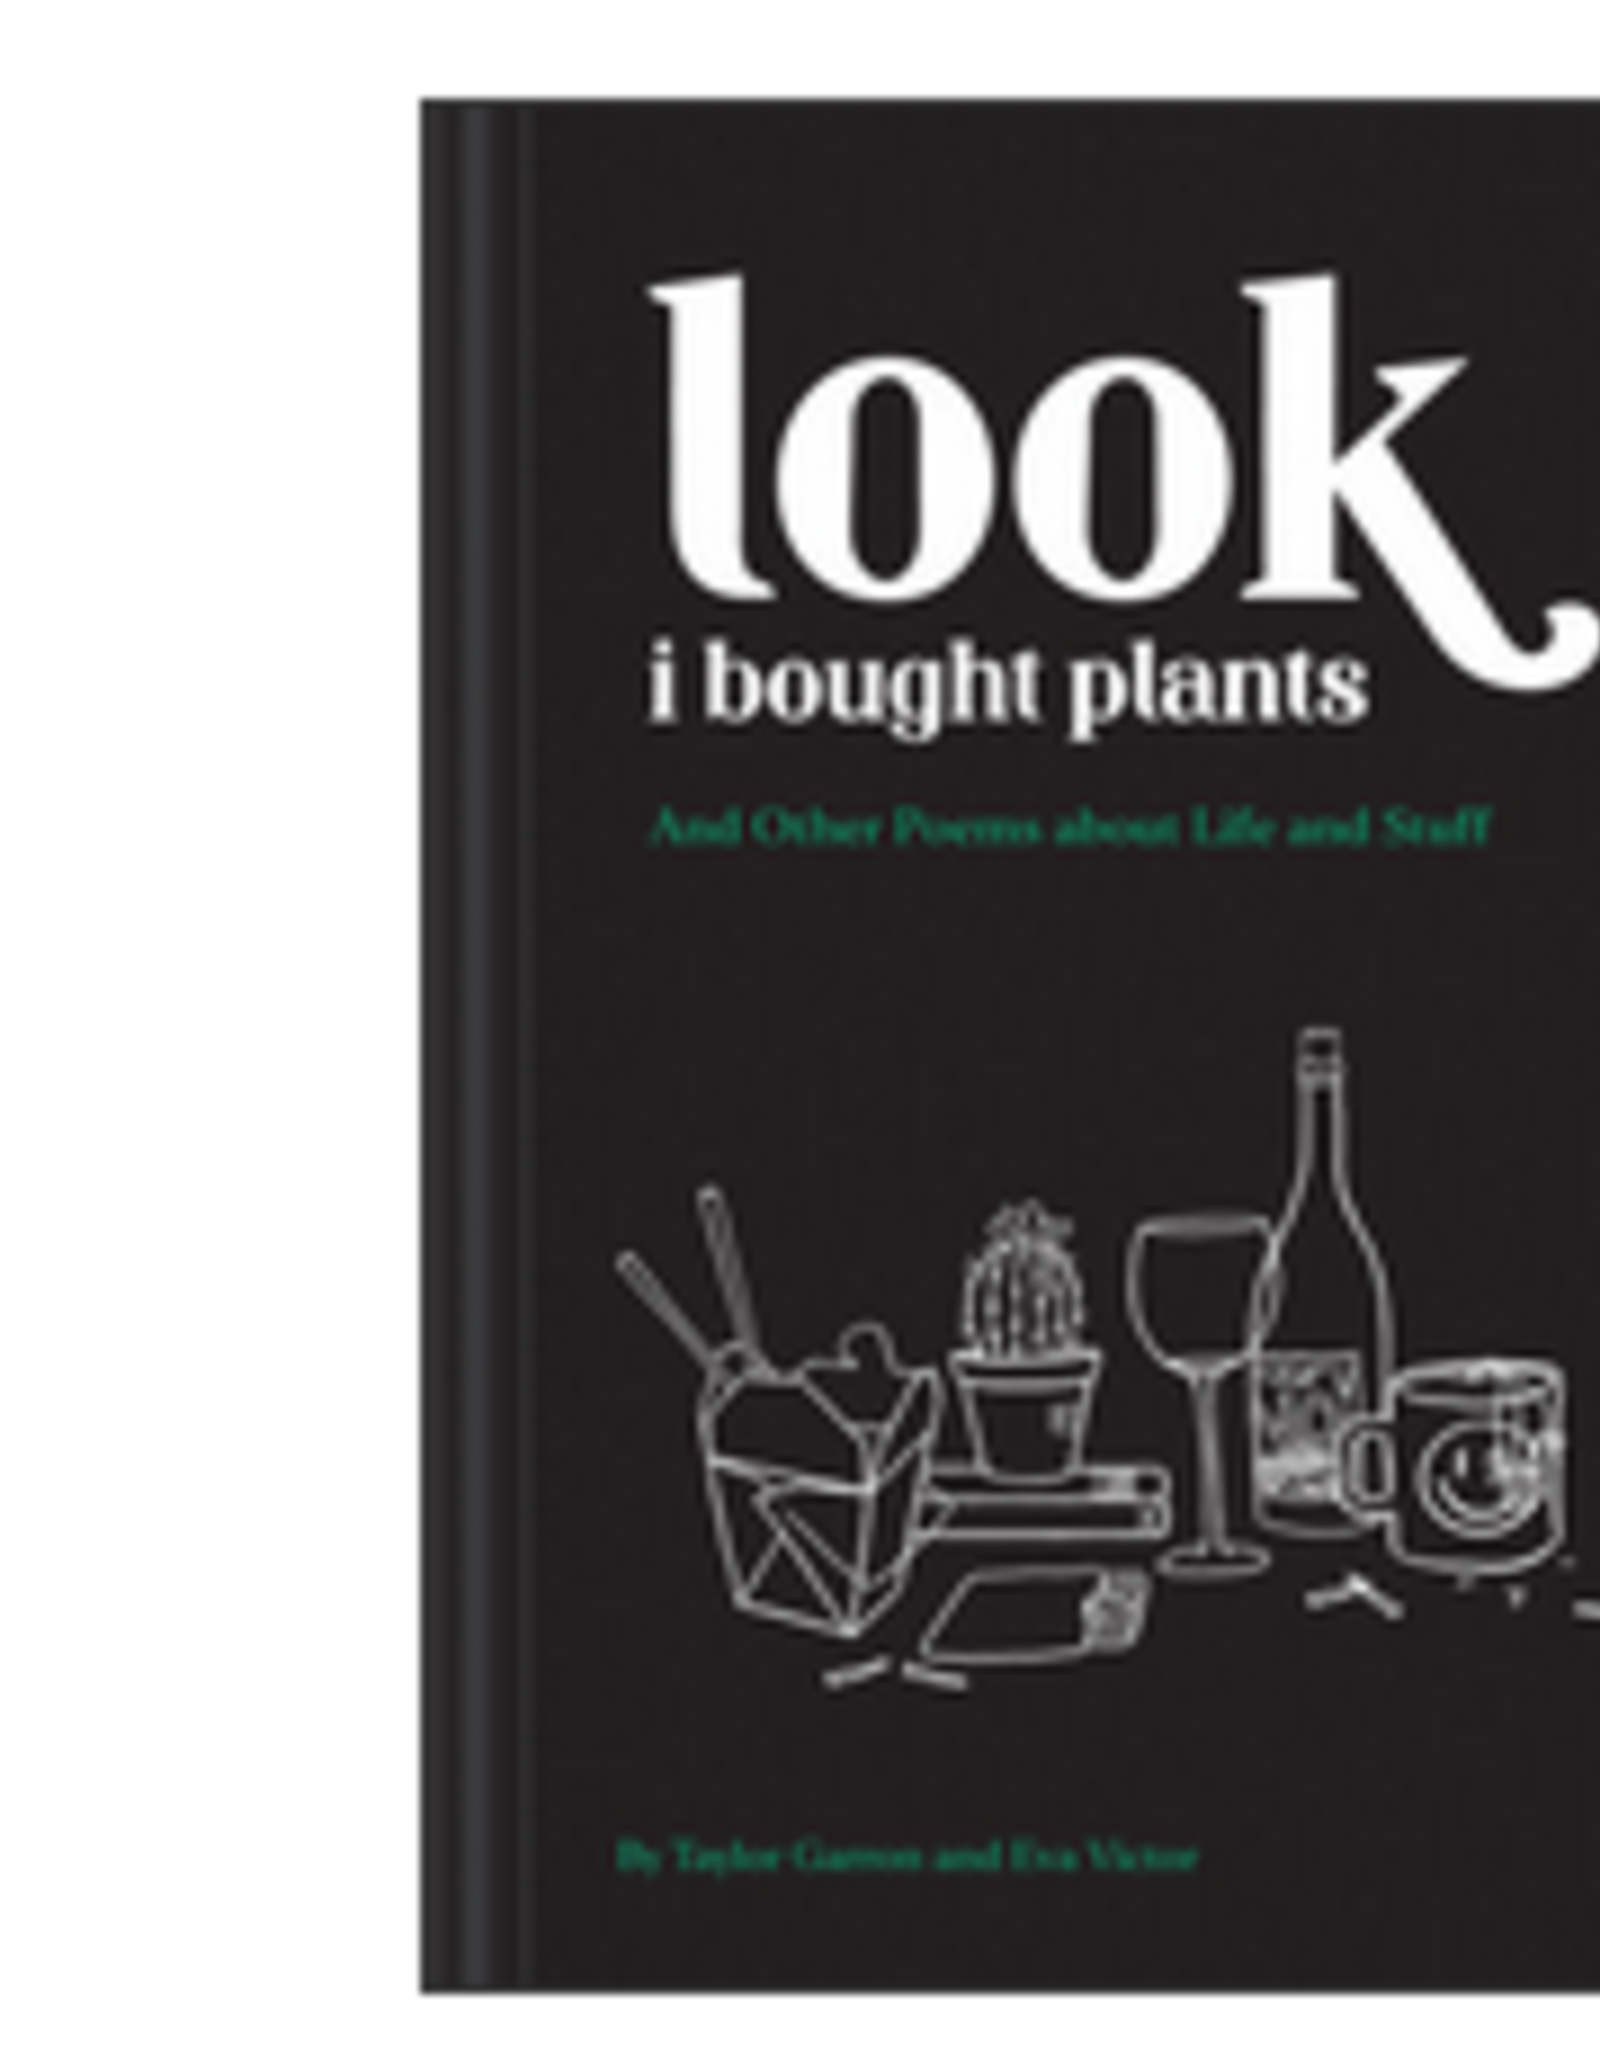 Look I Bought Plants Book